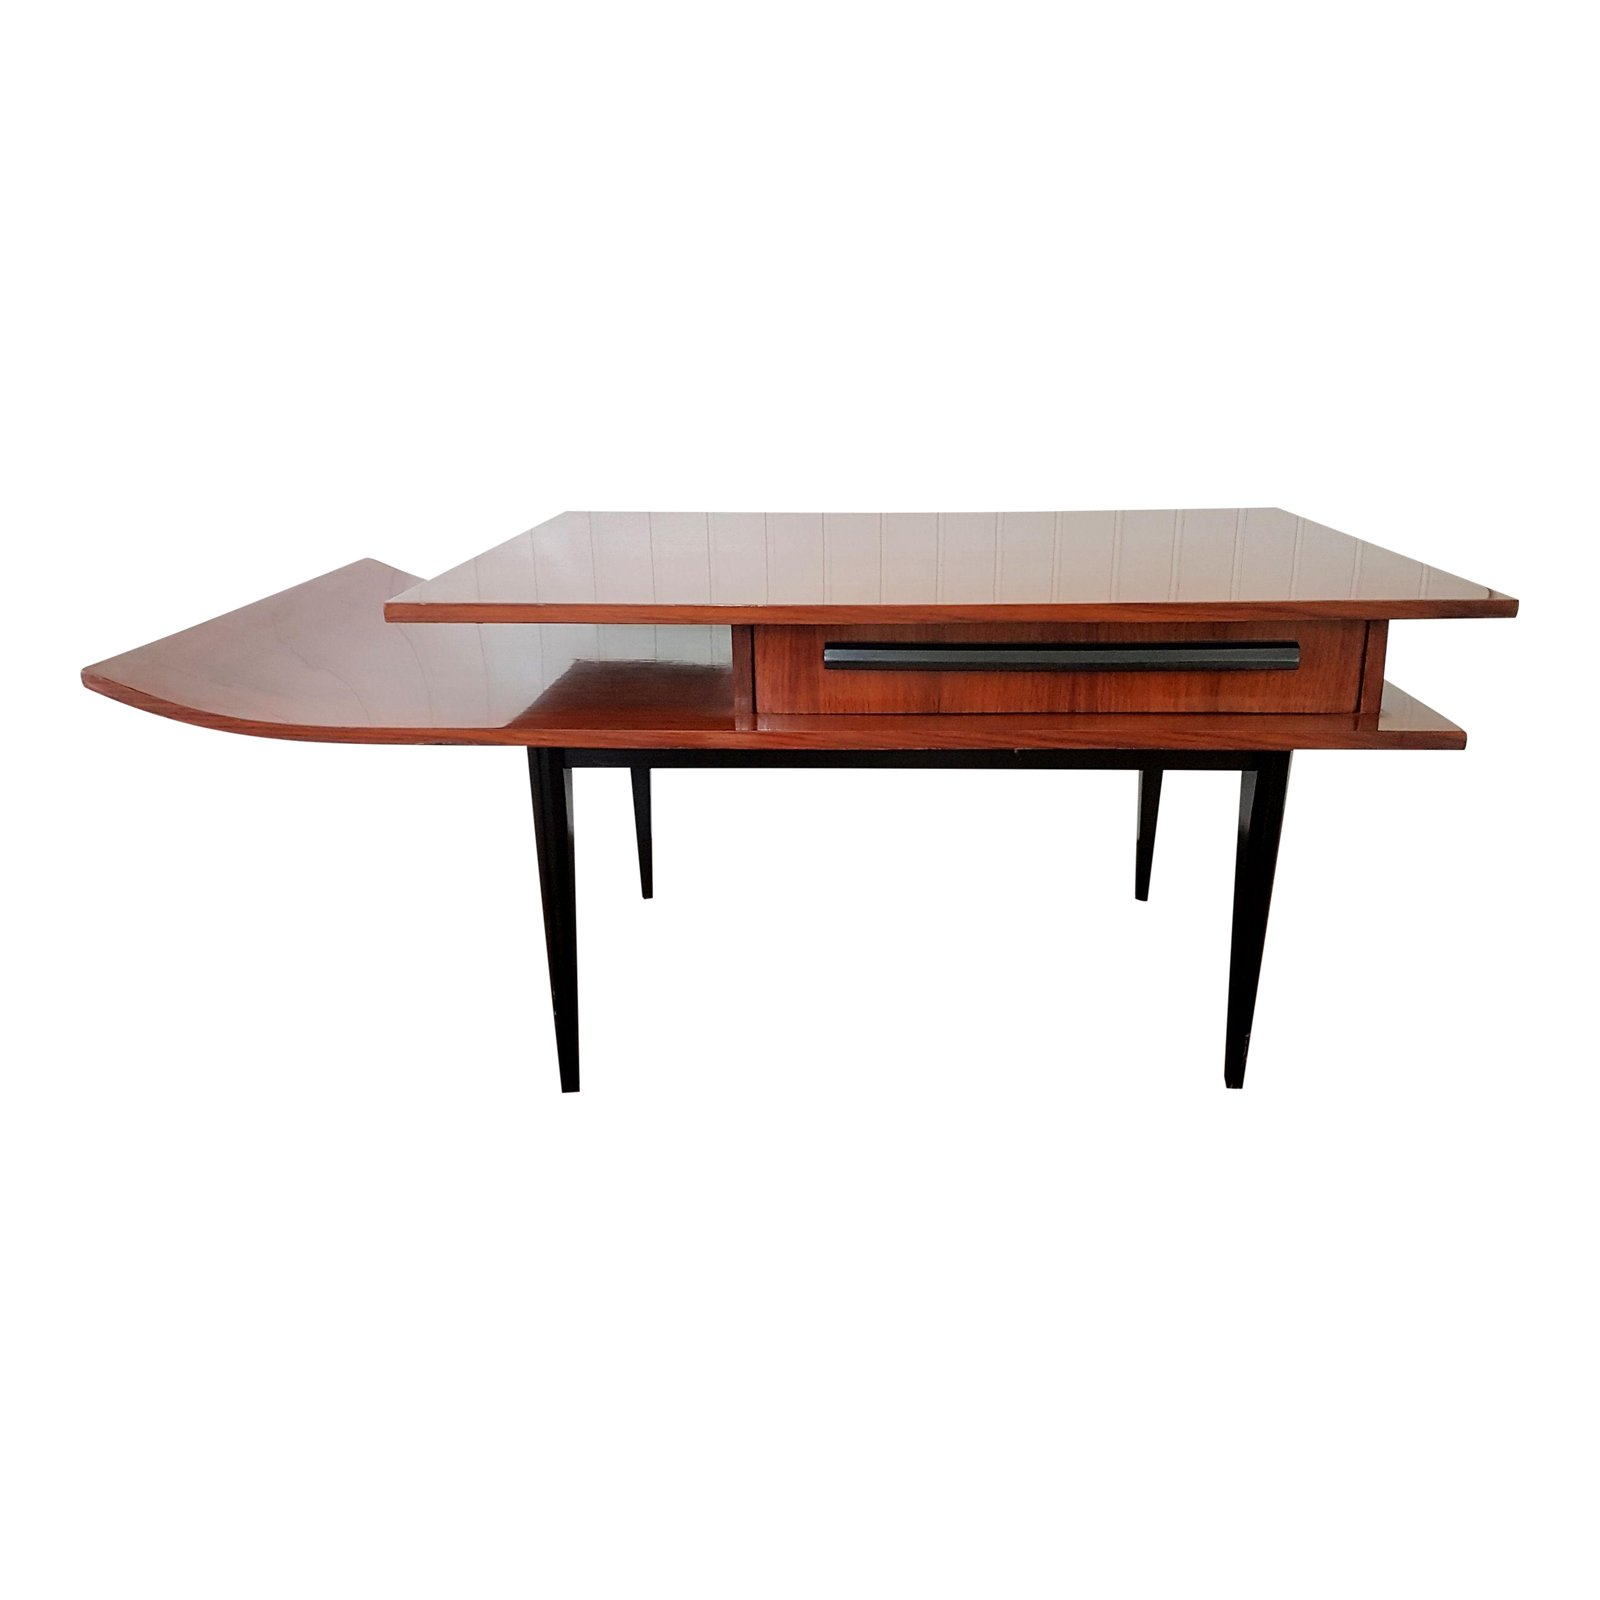 excellent rosewood italian mid century modern side table pagoda shape accent ikea dining room furniture tall bistro and chairs inch round tablecloth contemporary lamps for living